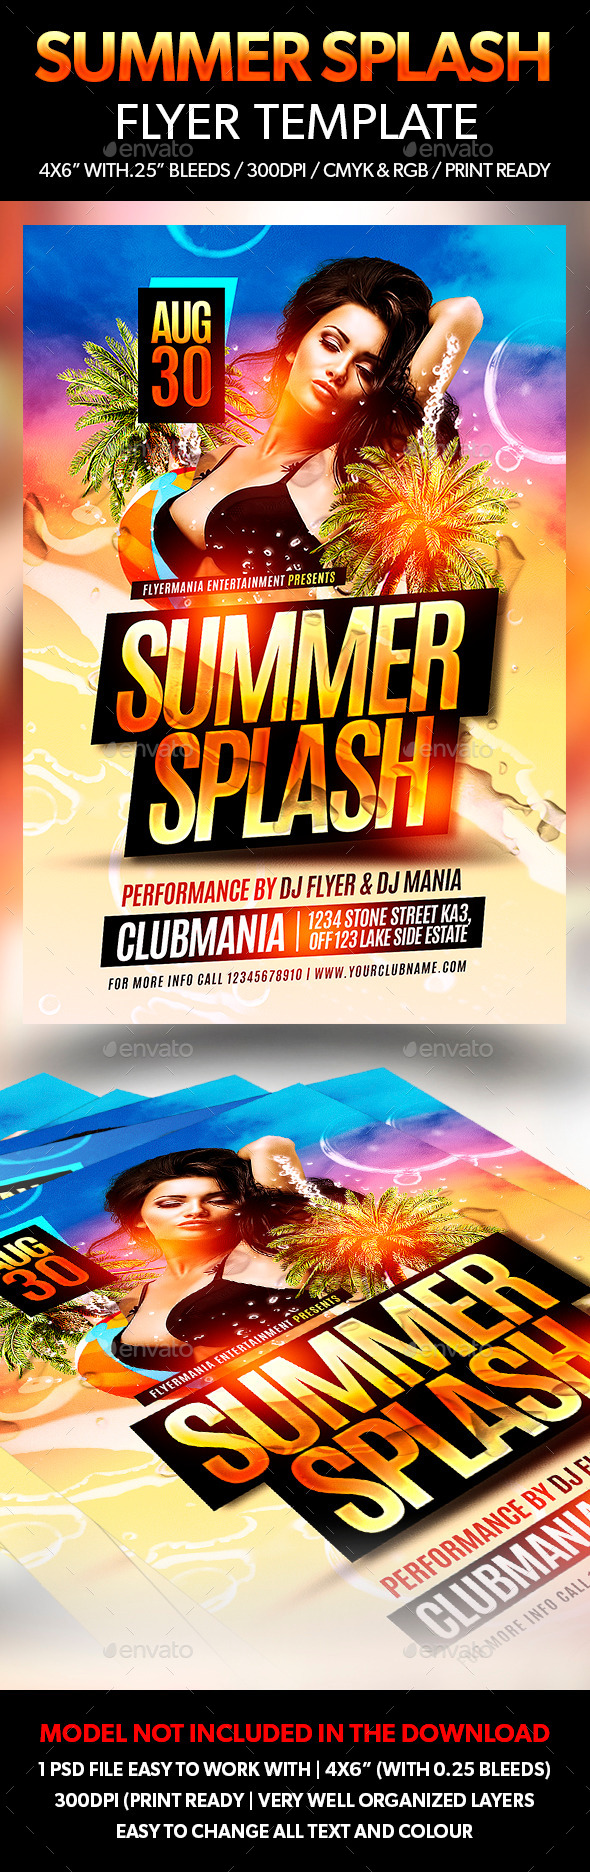 Summer Splash Flyer Template - Flyers Print Templates